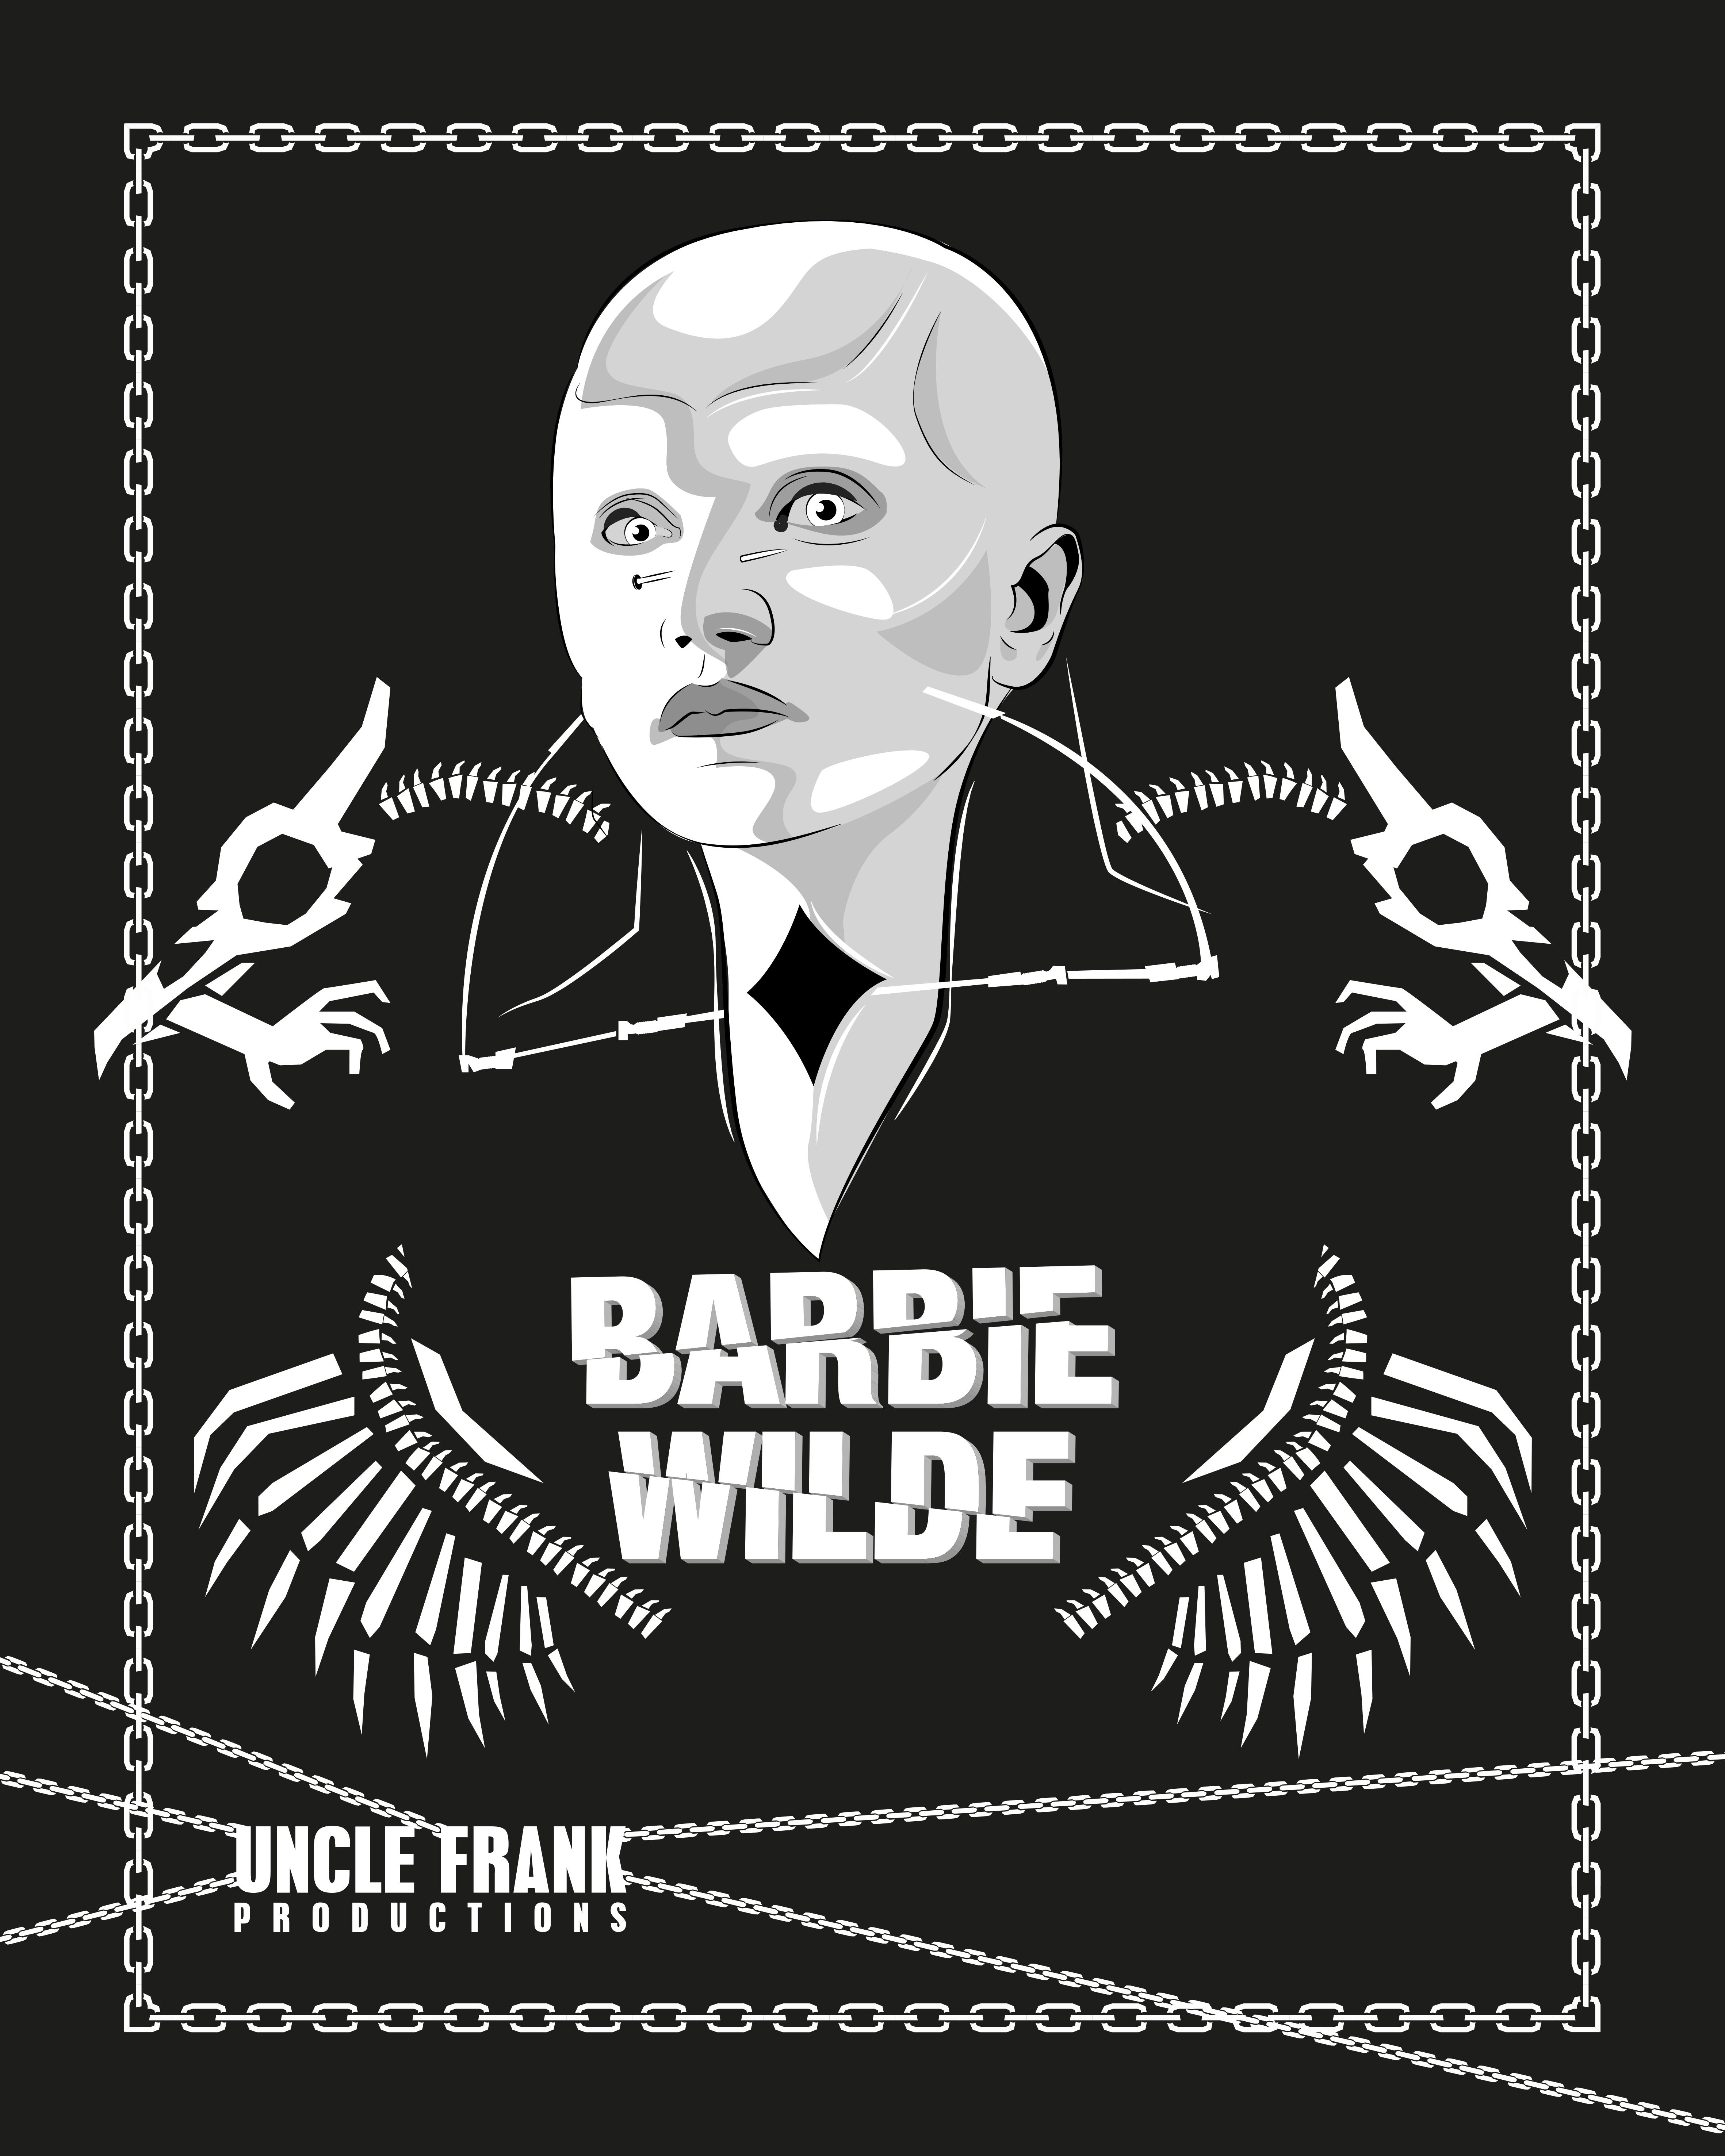 Barbie Wilde Guest Poster